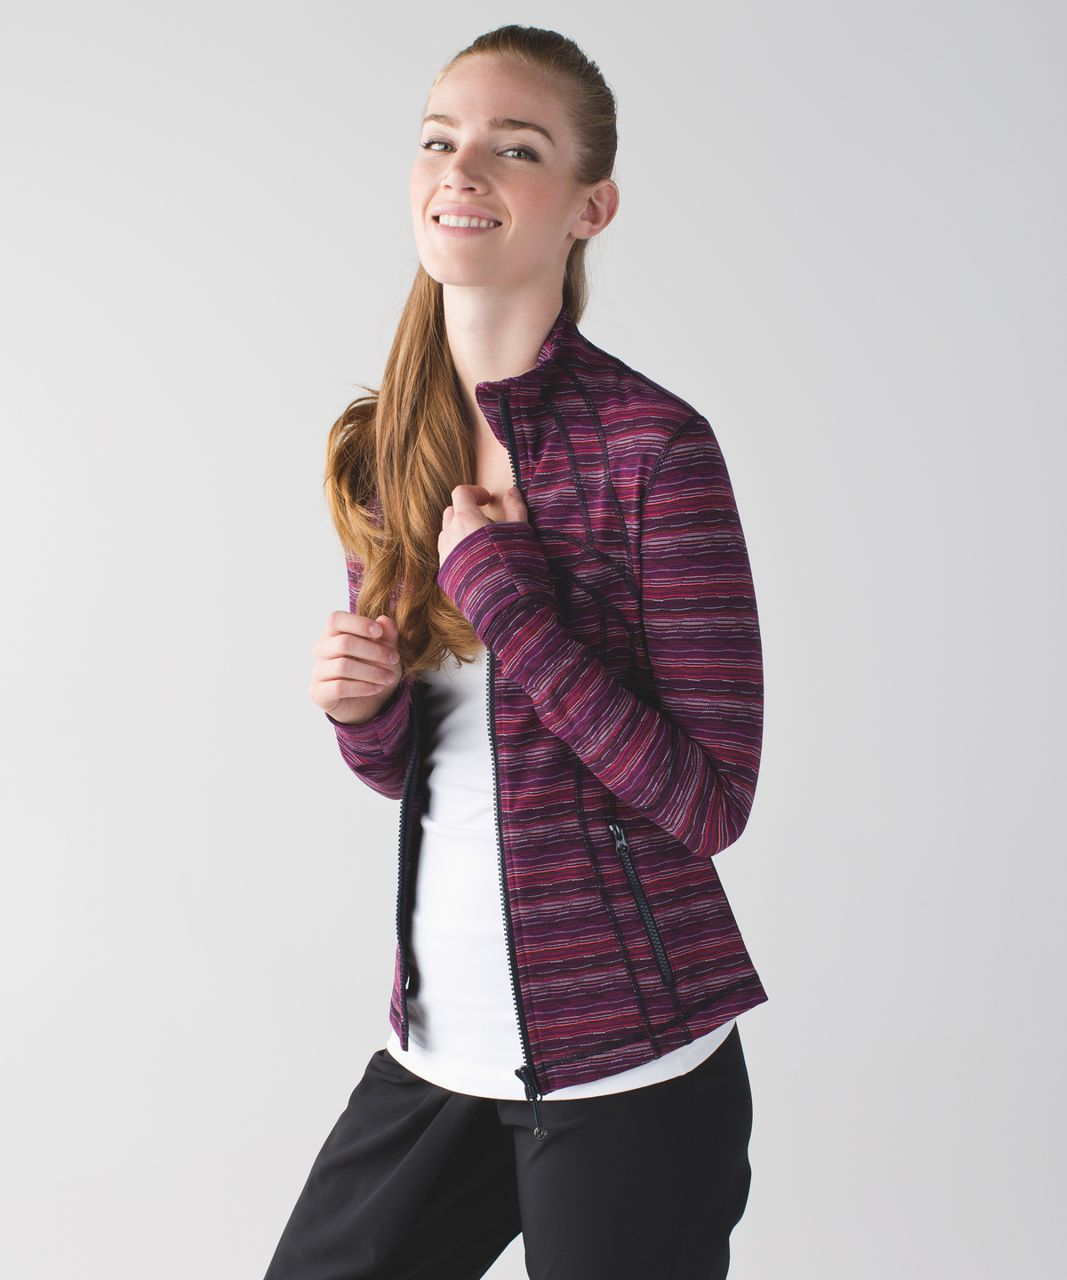 Lululemon Define Jacket - Space Dye Twist Regal Plum Alarming